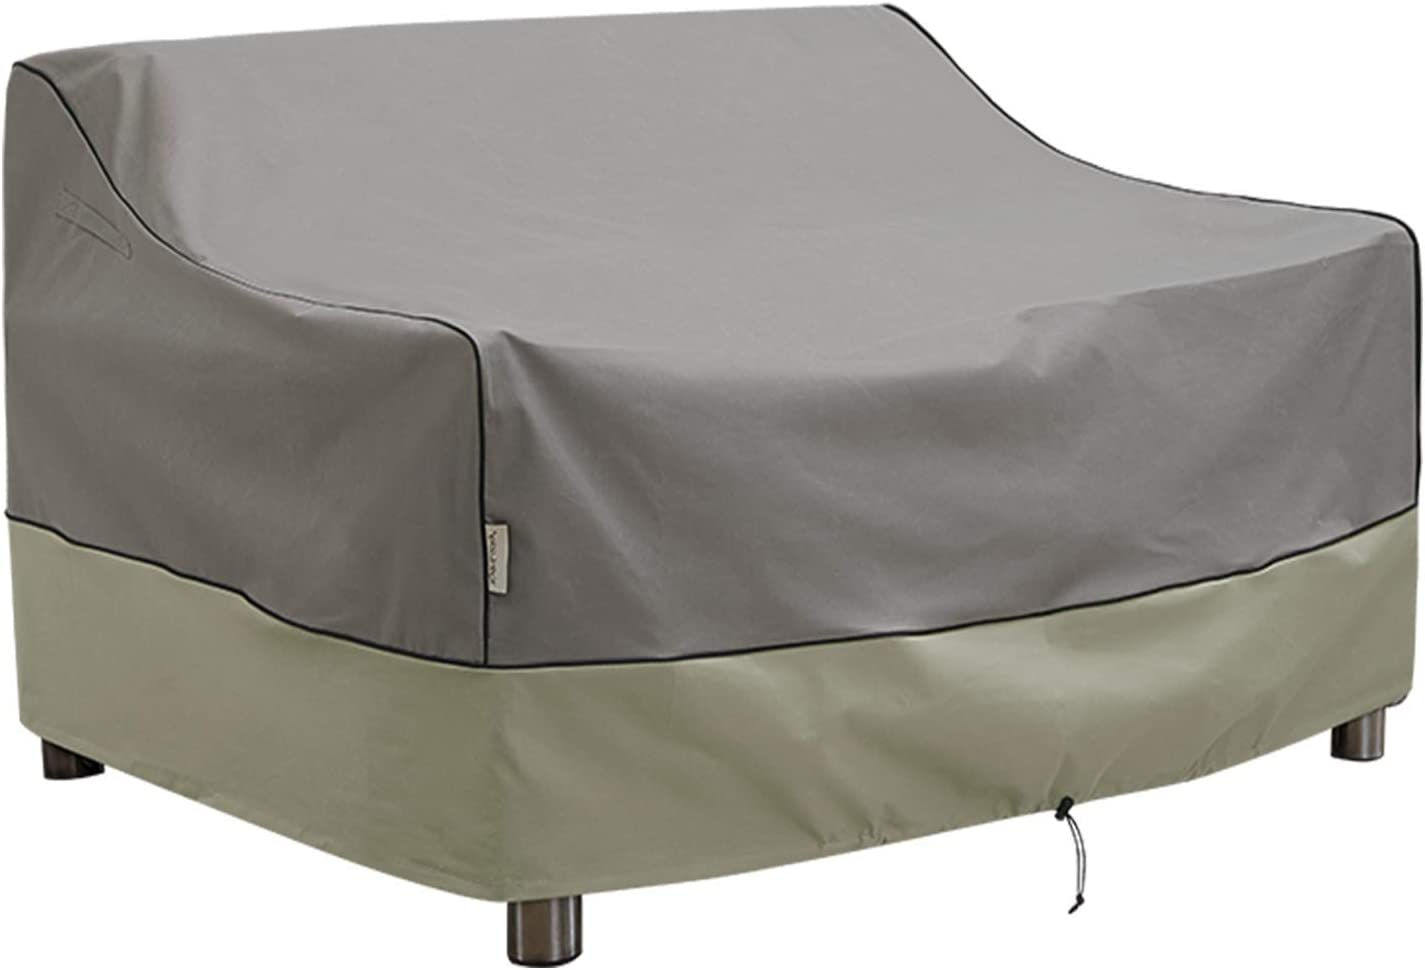 Kylinlucky Outdoor Furniture Covers Waterproof, Heavy Duty Bench Loveseat Cover - Patio Sofa Covers Fits up to 58W x 32.5D x 33H inches